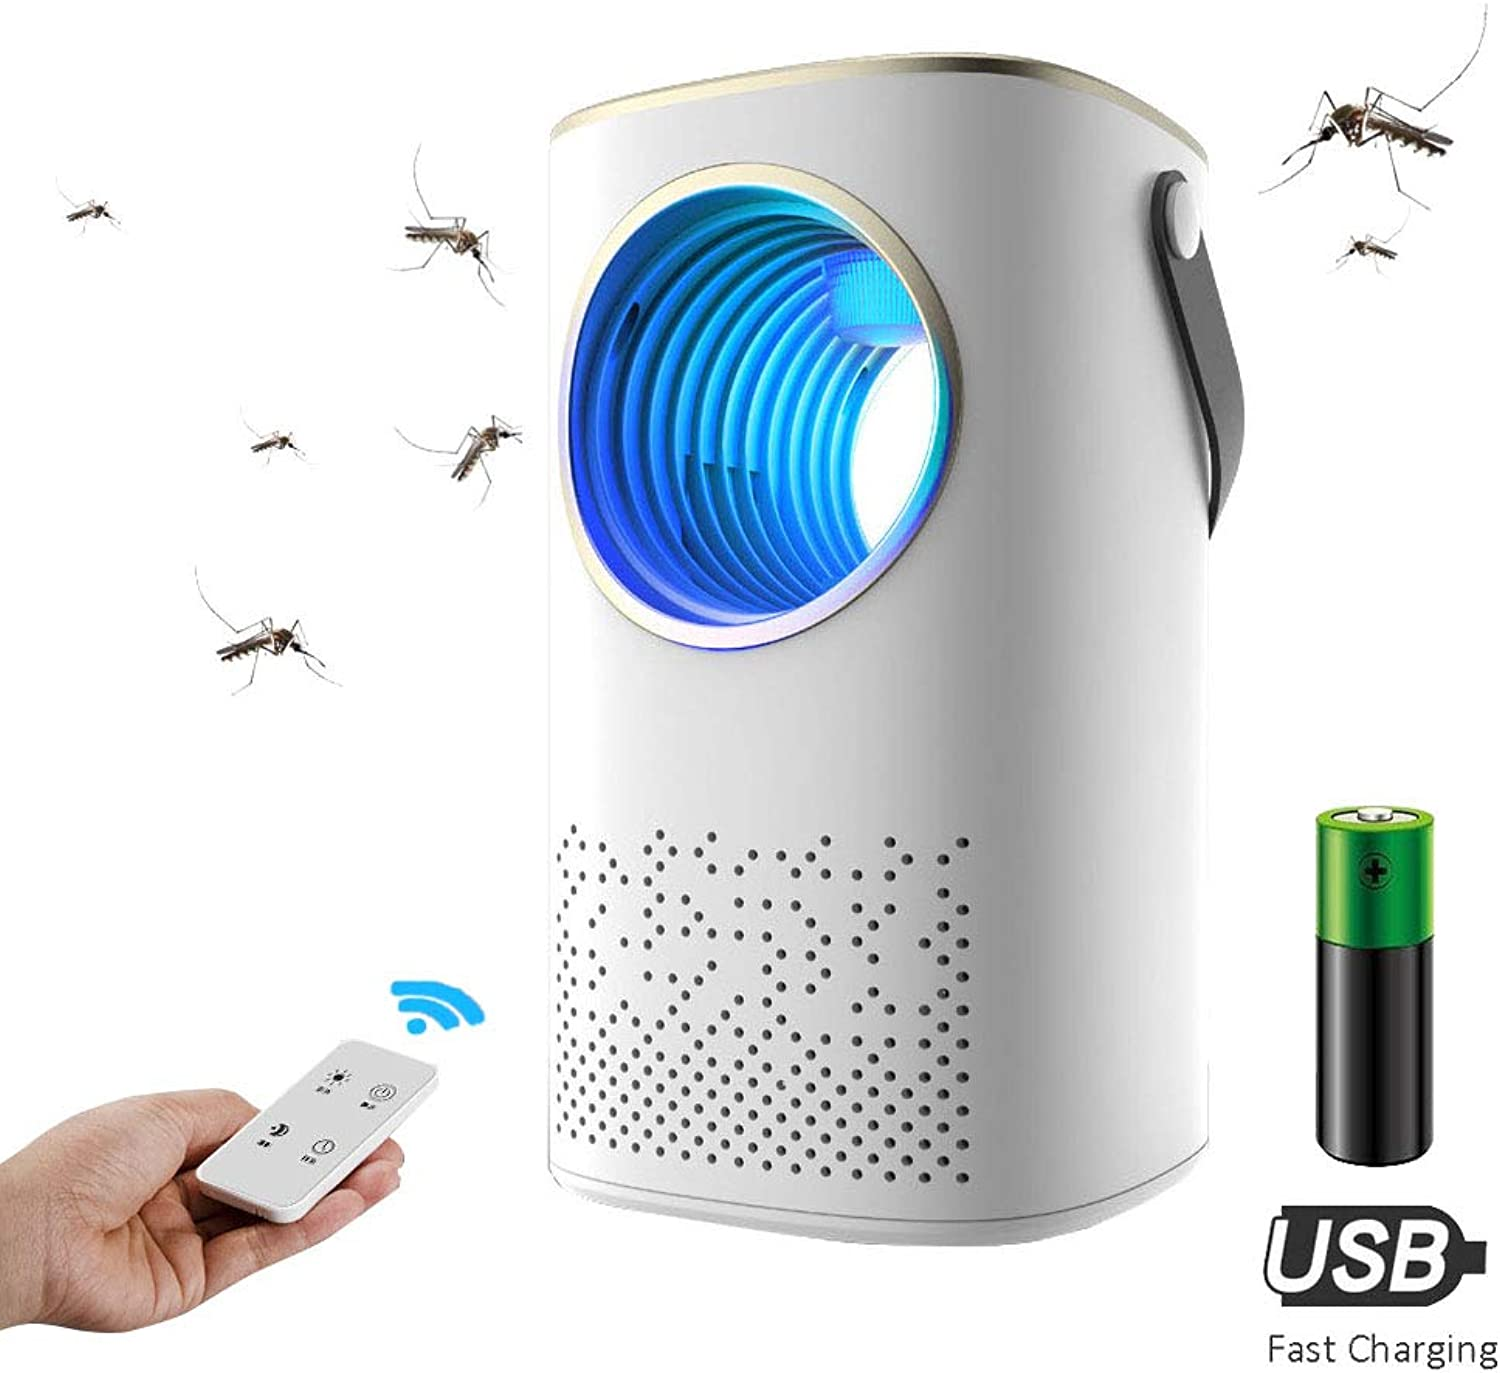 Portable USB Mosquito Killer Lamp,Camping Lantern Tent Light, with 2000 Mah Rechargeable Battery, Remote Control, Timing,White